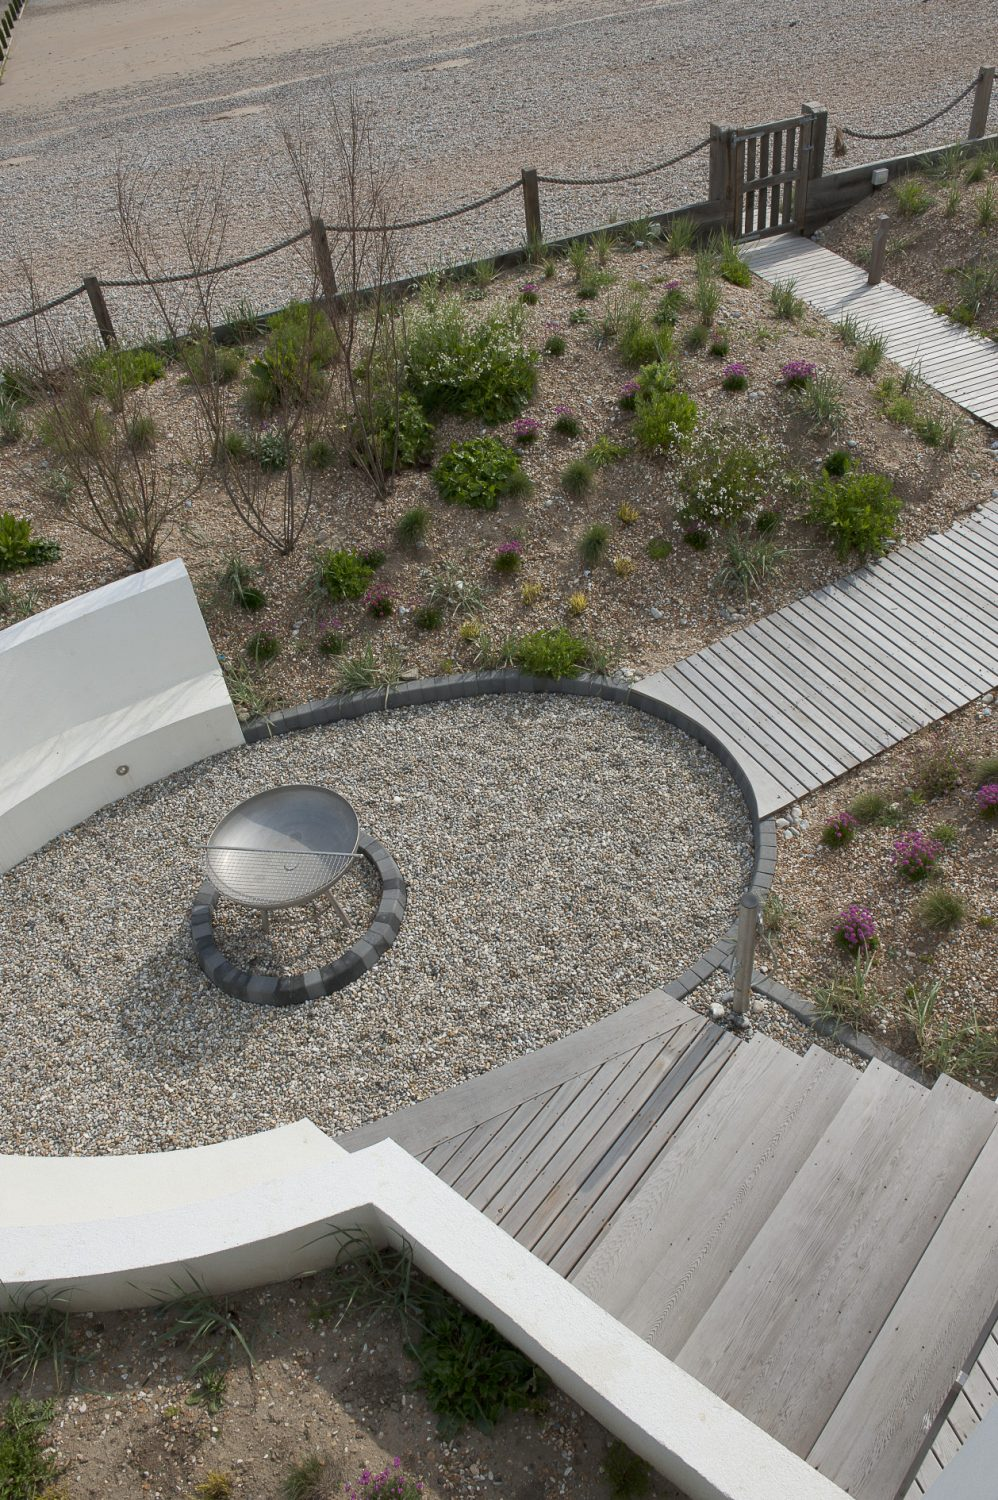 Sea Gem's garden was designed by Kent-based Jo Thompson, who has recently created an award-winning garden at Chelsea Flower Show. Curving wooden boardwalks snake through the grasses and a fire pit is surrounded by a sunken area of seating that is invisible from the beach and so offers both shelter and privacy